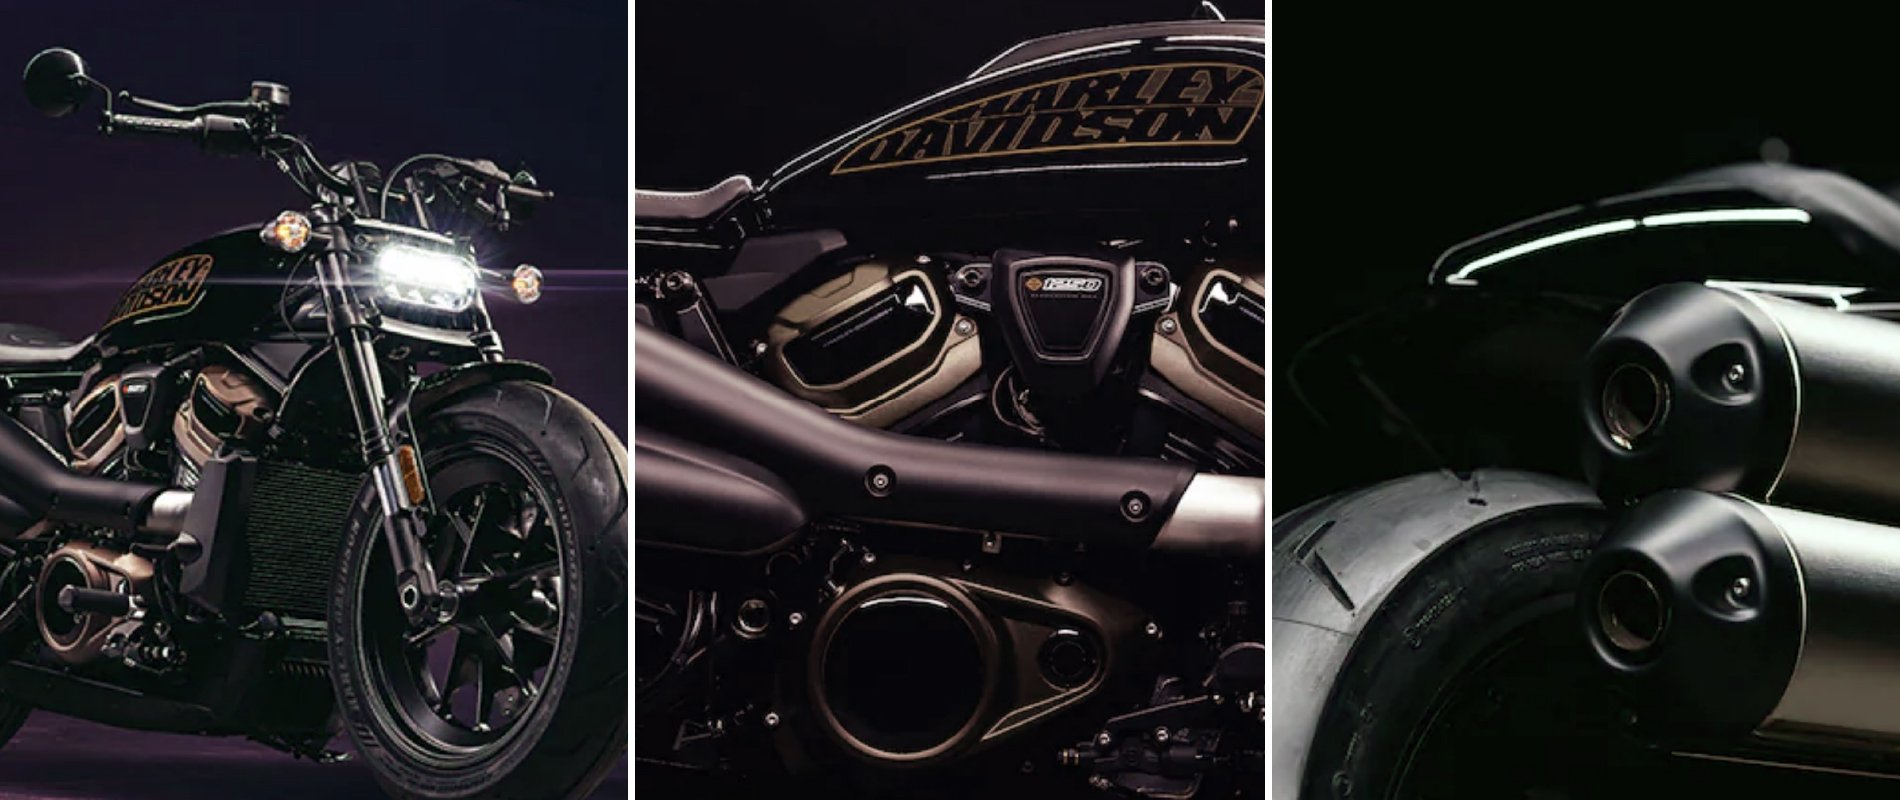 The 2021 Harley-Davidson Sportster S is designed with performance in mind!